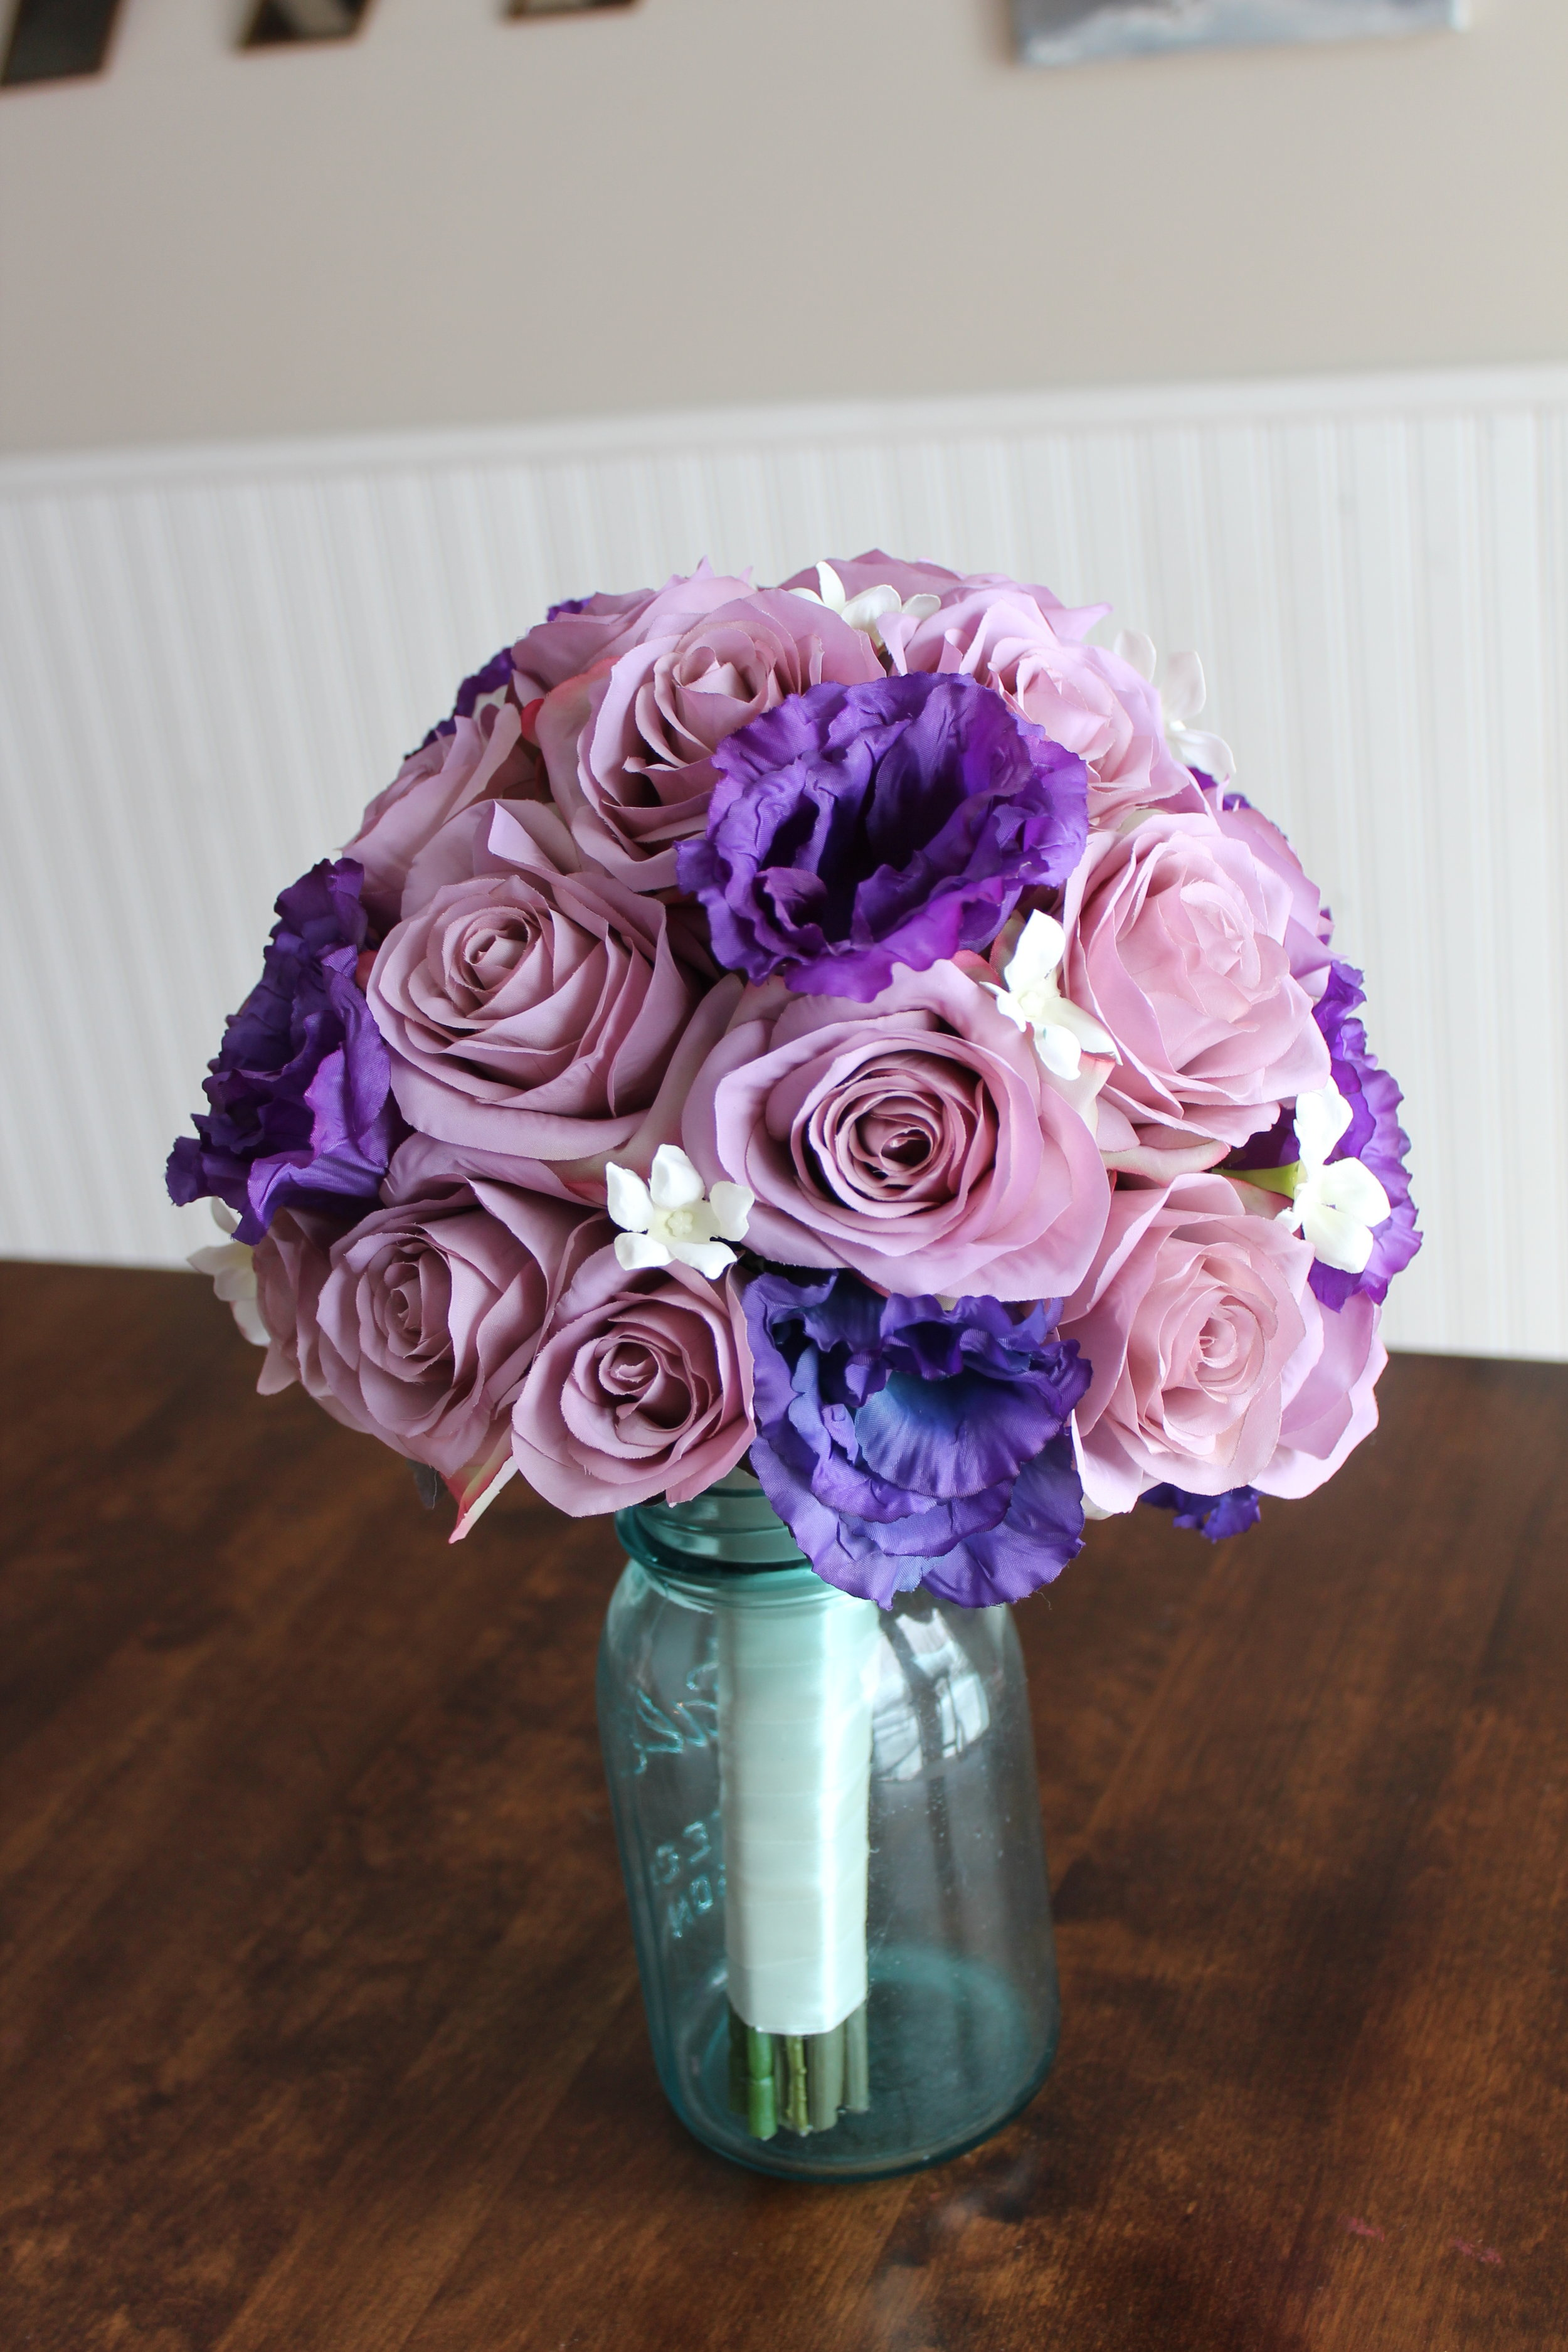 lavendar-roses-dark-purple-lisianthus-white-stephanotis-satin-white-ribbon-wrap-silk-wedding-bouquet-recreation